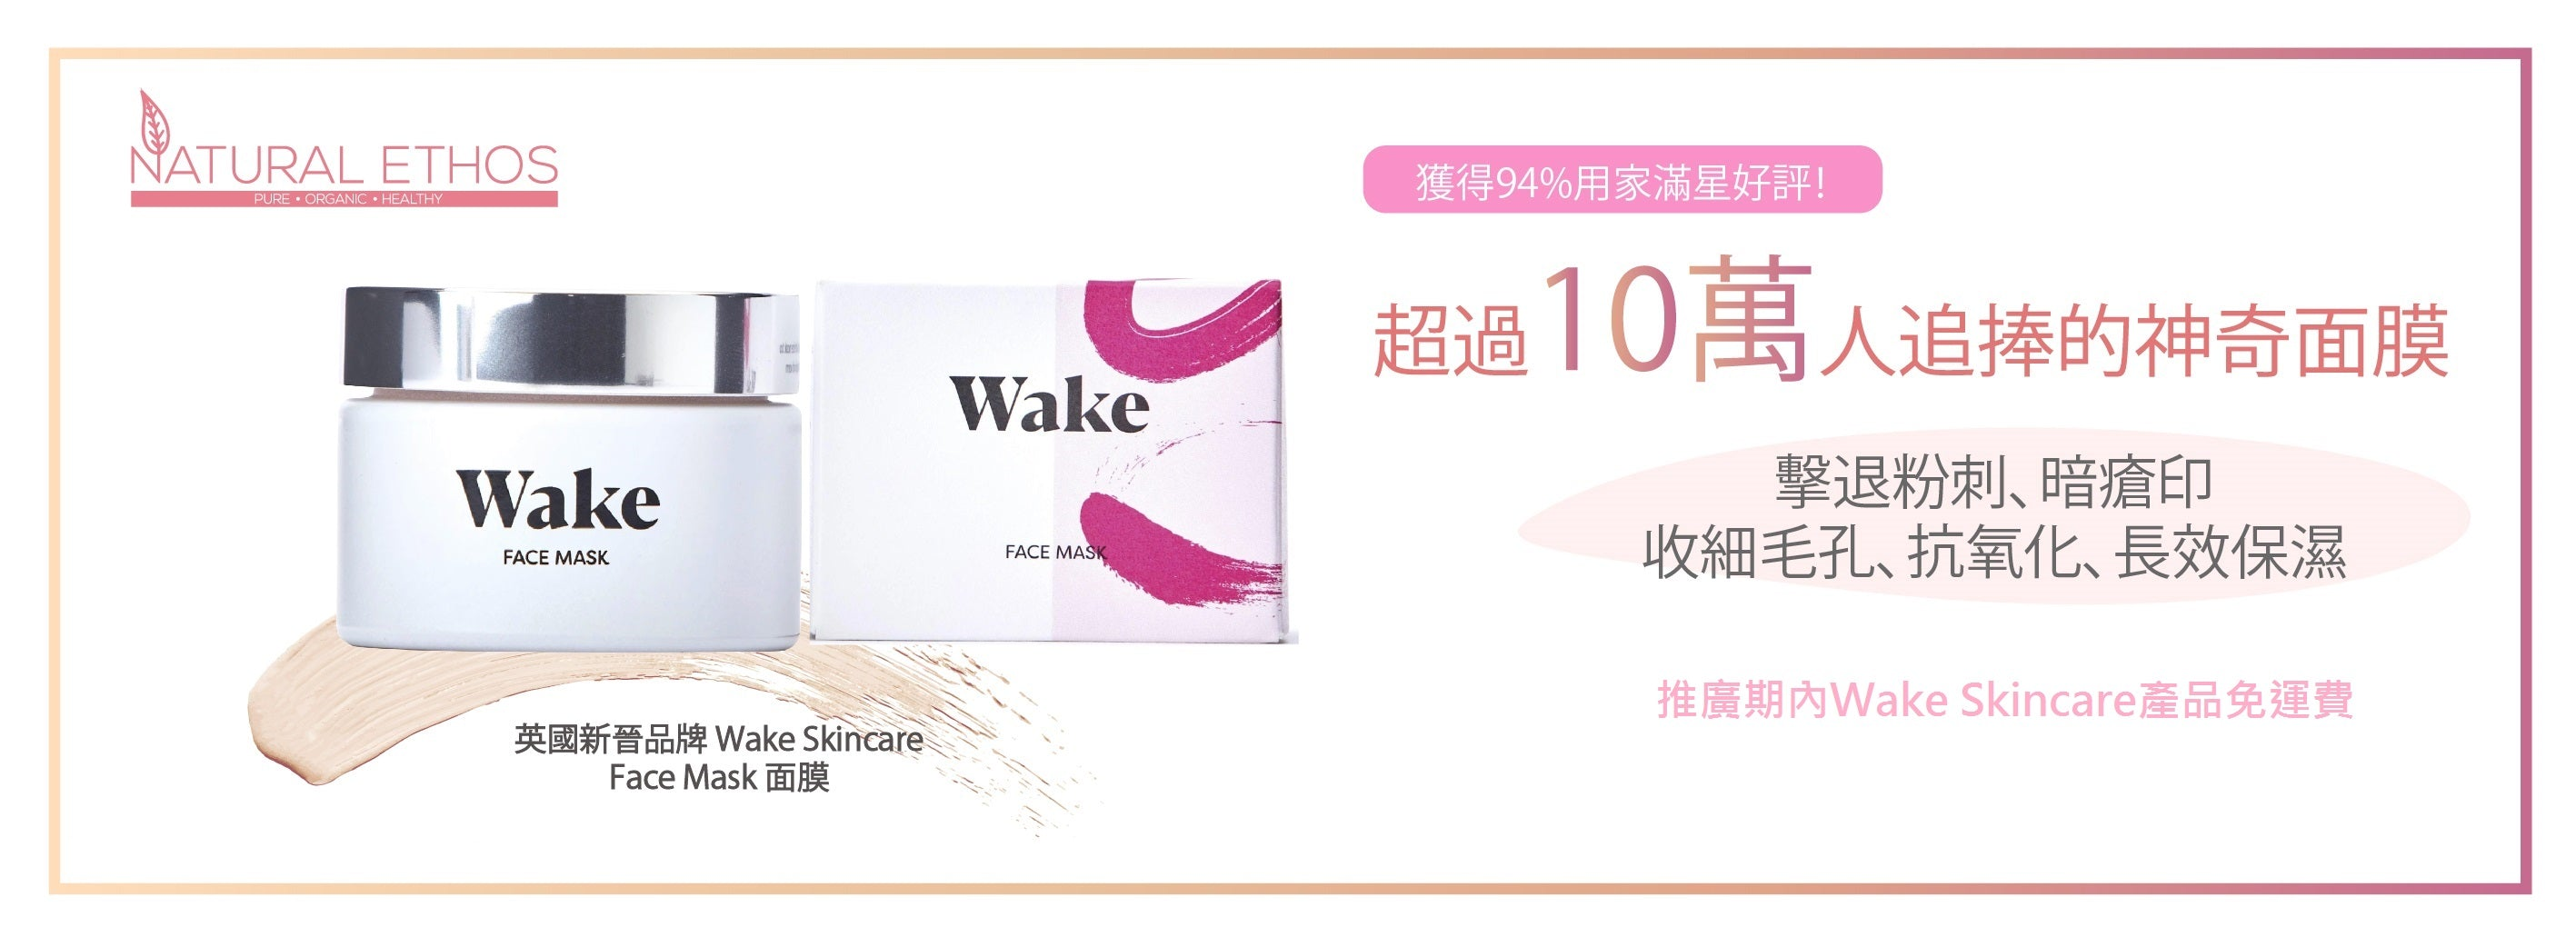 Wake Skincare Face Mask marketing banner collection